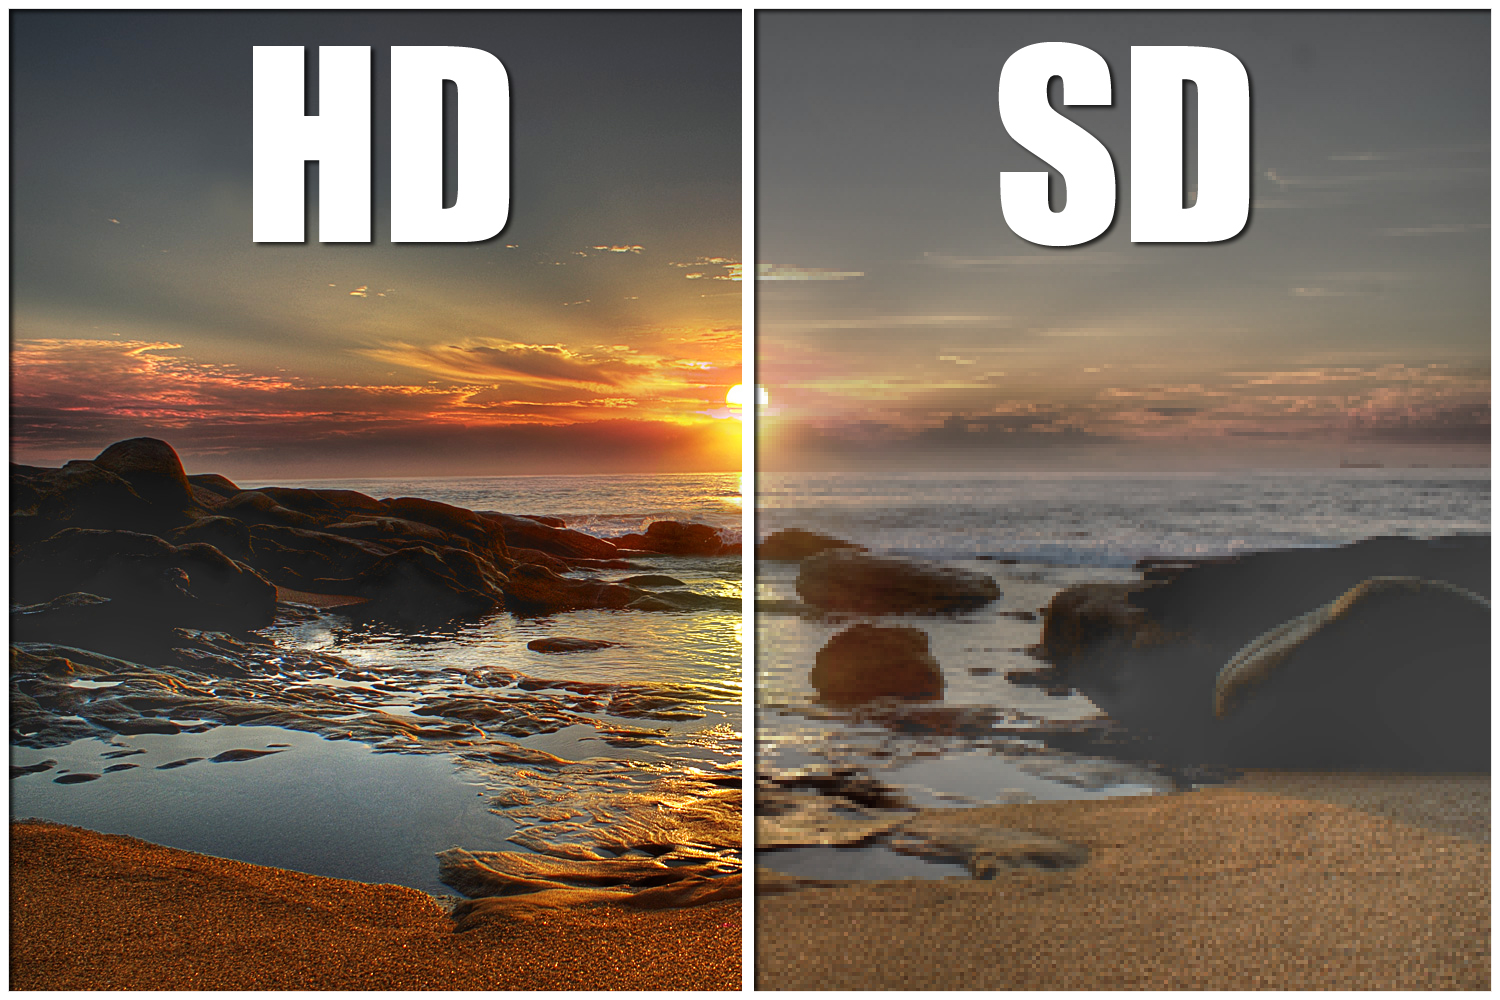 SD vs HD